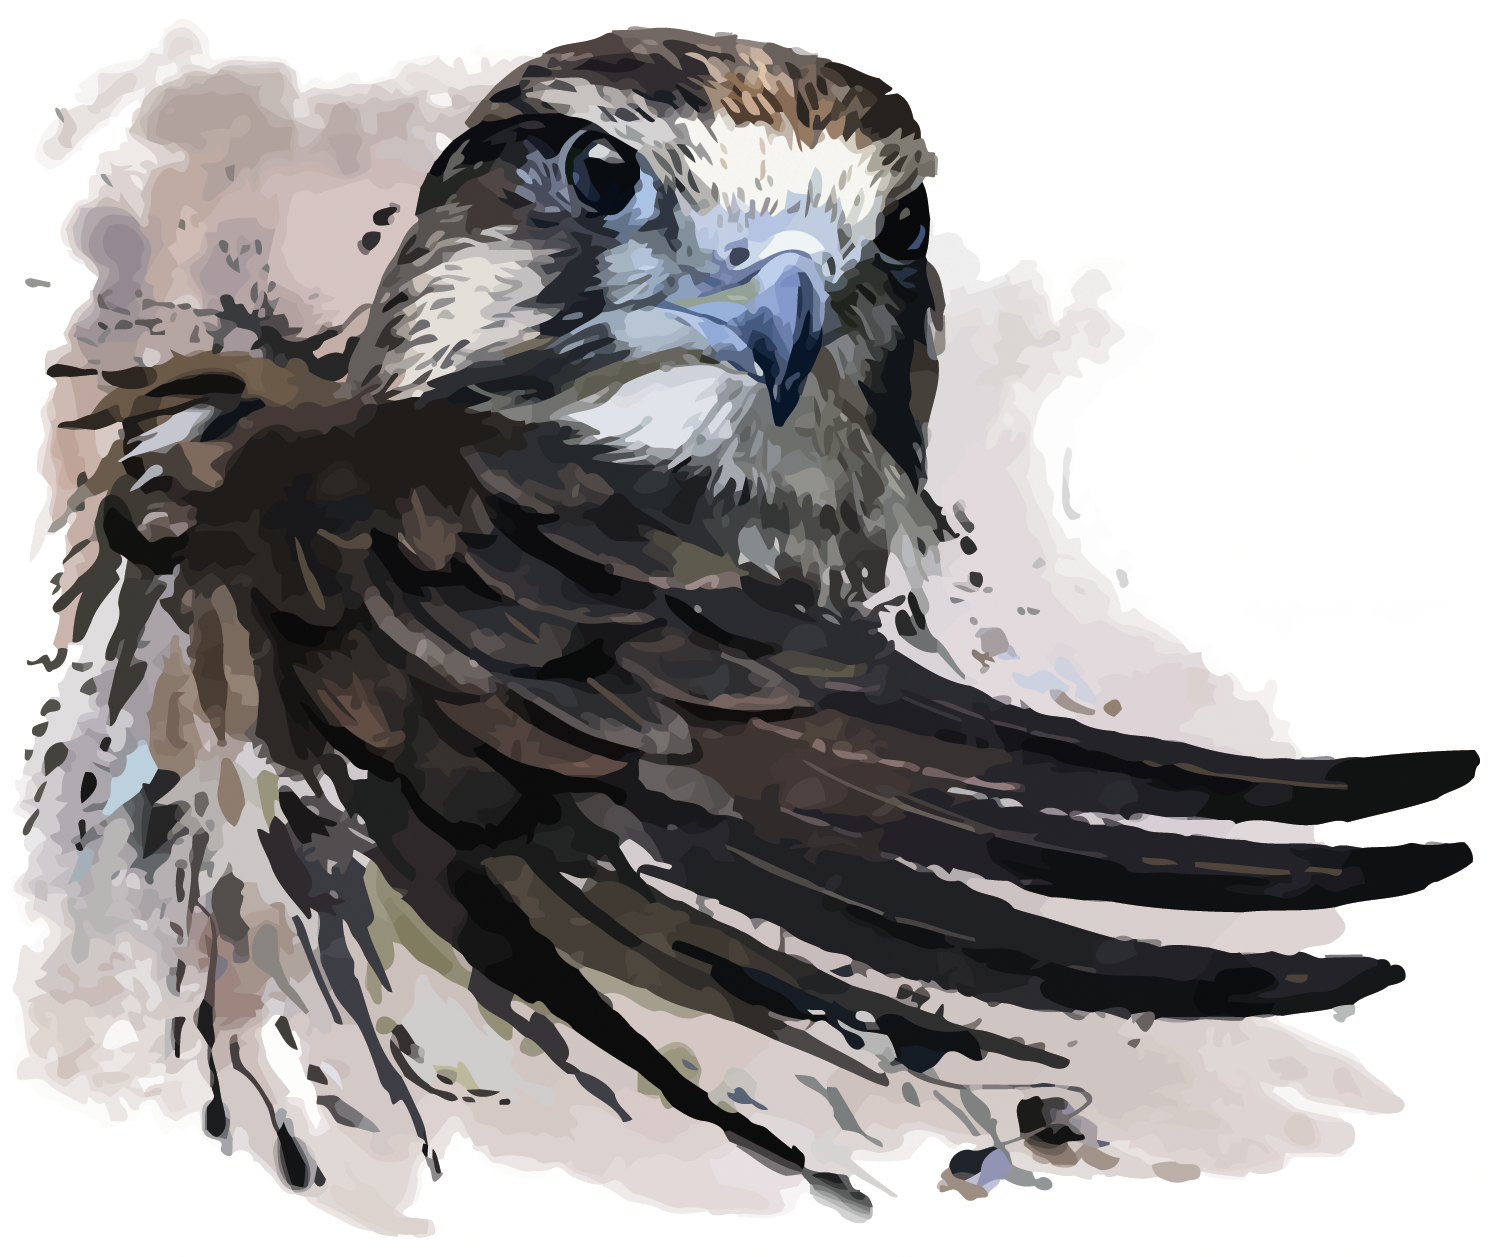 Drawing eagles watercolor. Painting falcon illustration vector